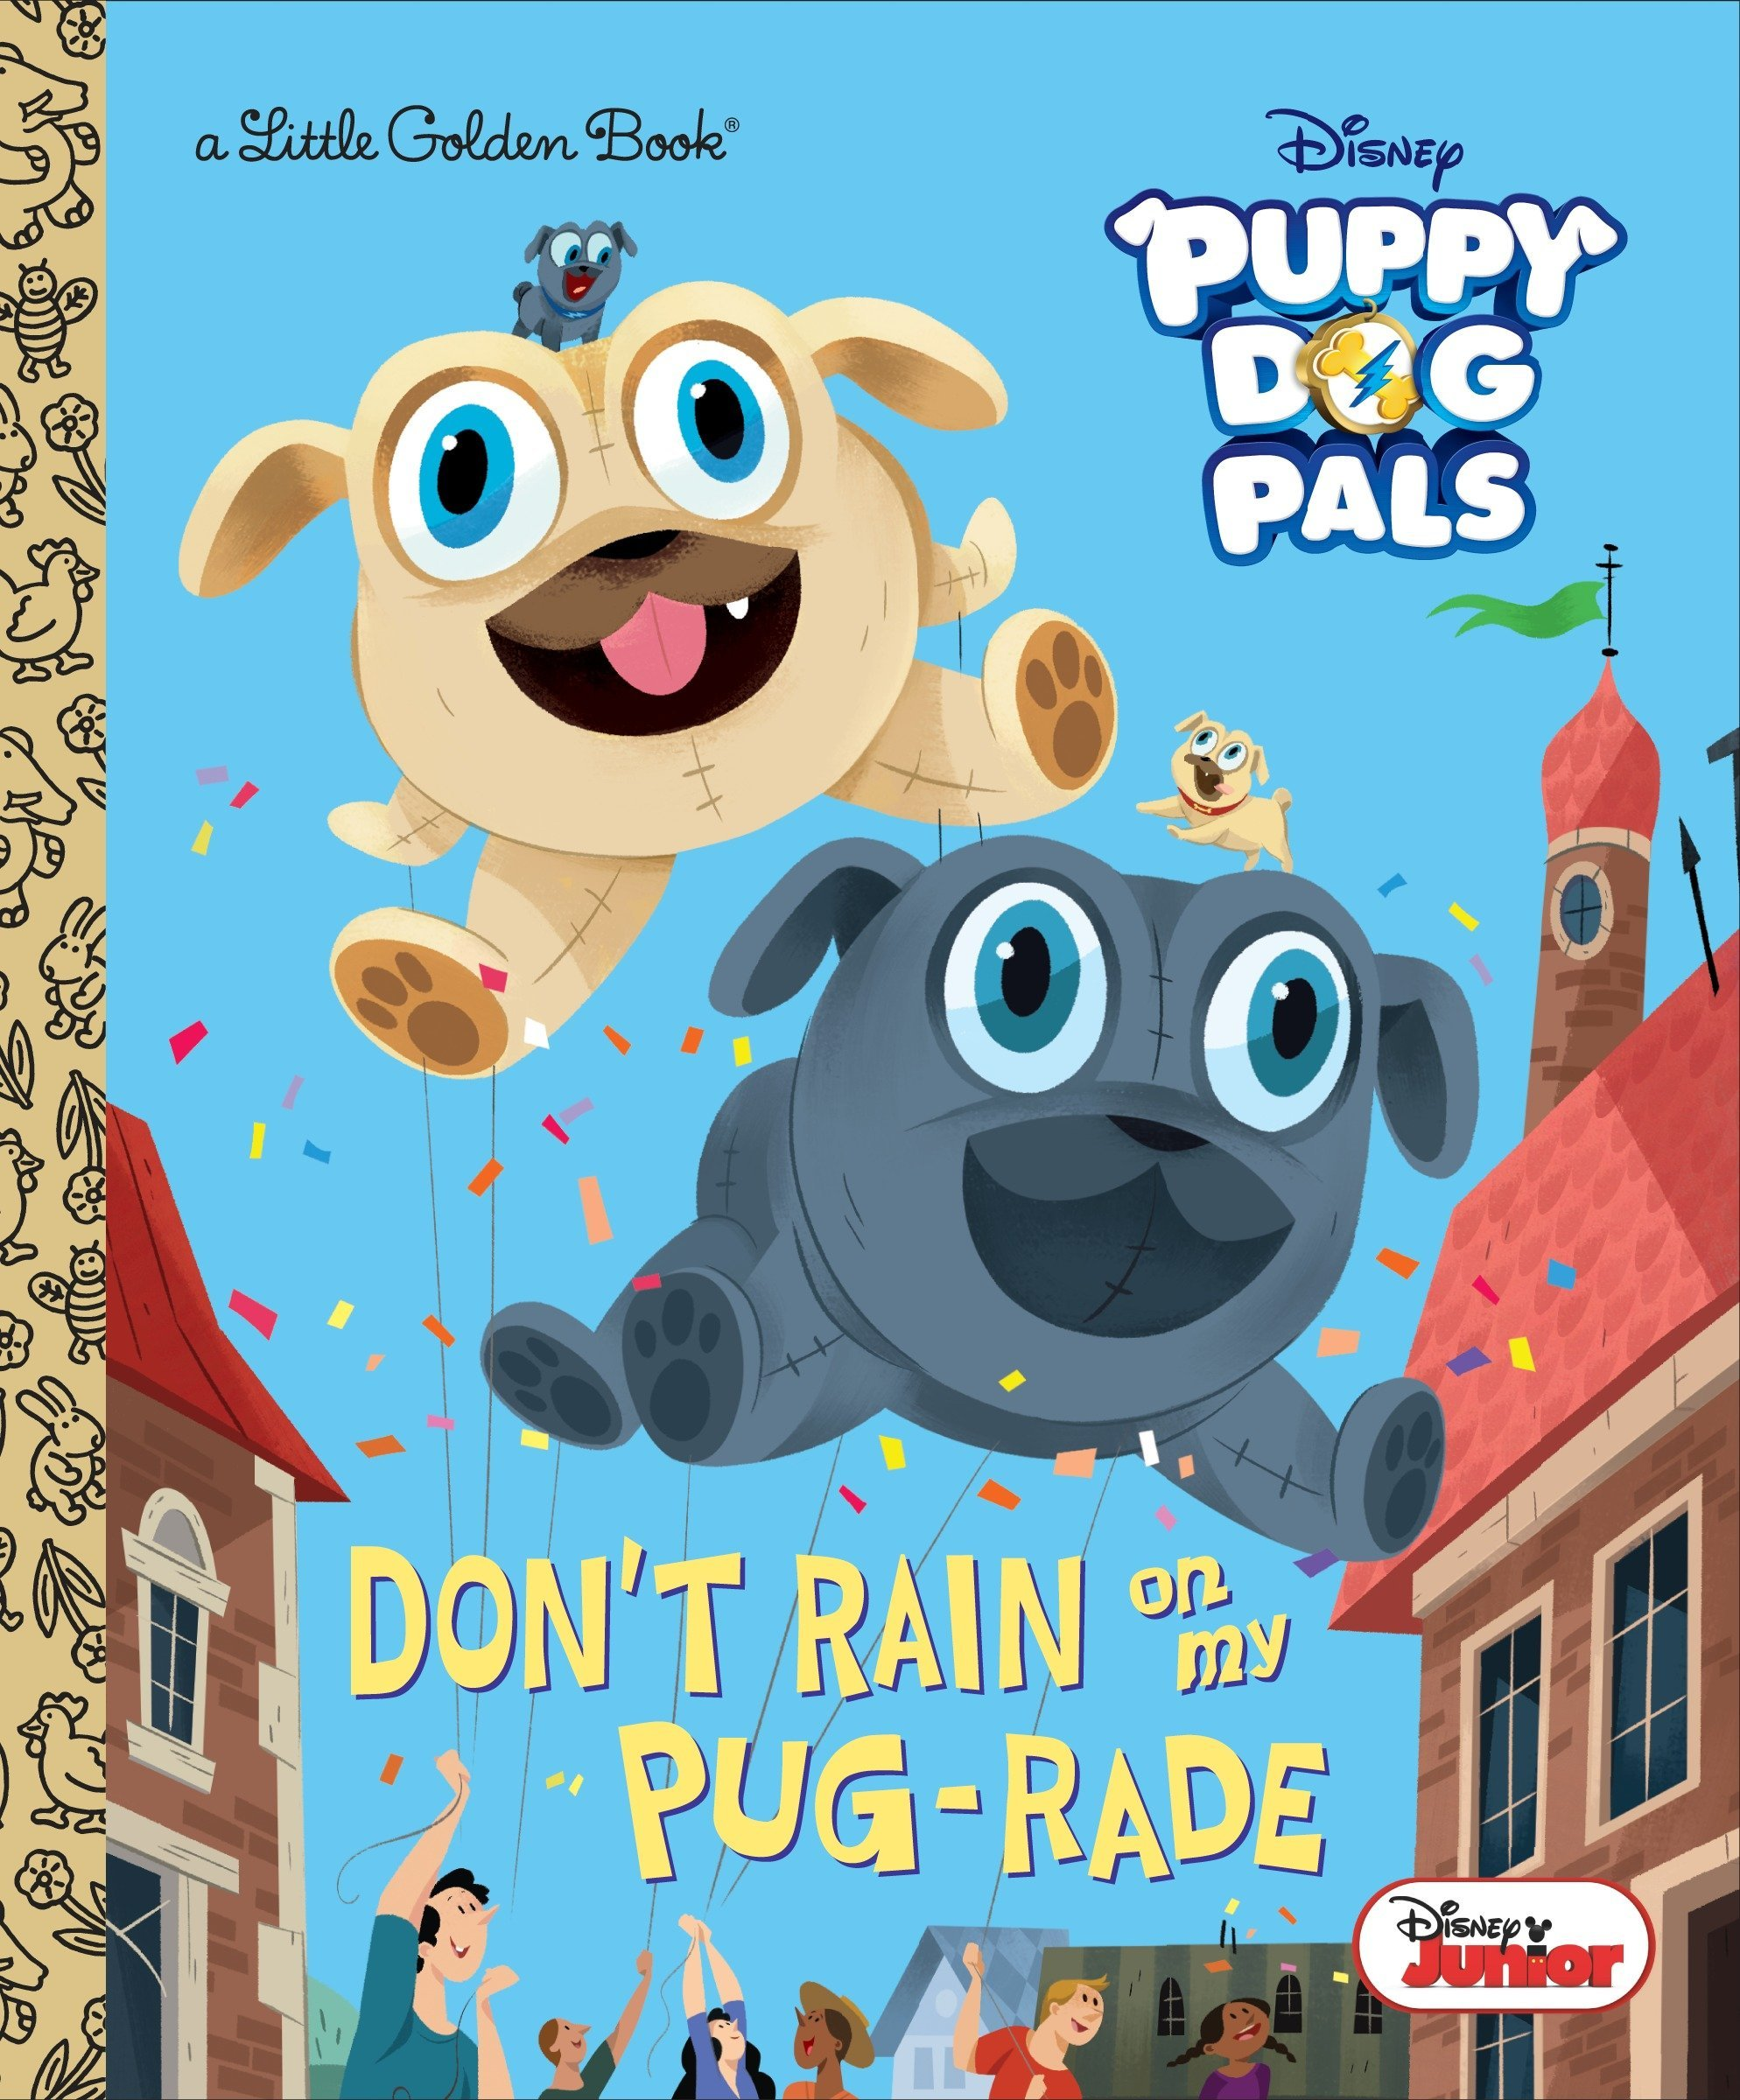 Don't Rain on My Pug-rade (Disney Junior Puppy Dog Pals) (Little Golden Book):  Lauren Forte, Maryam Sefati: 9780736439008: Amazon.com: Books